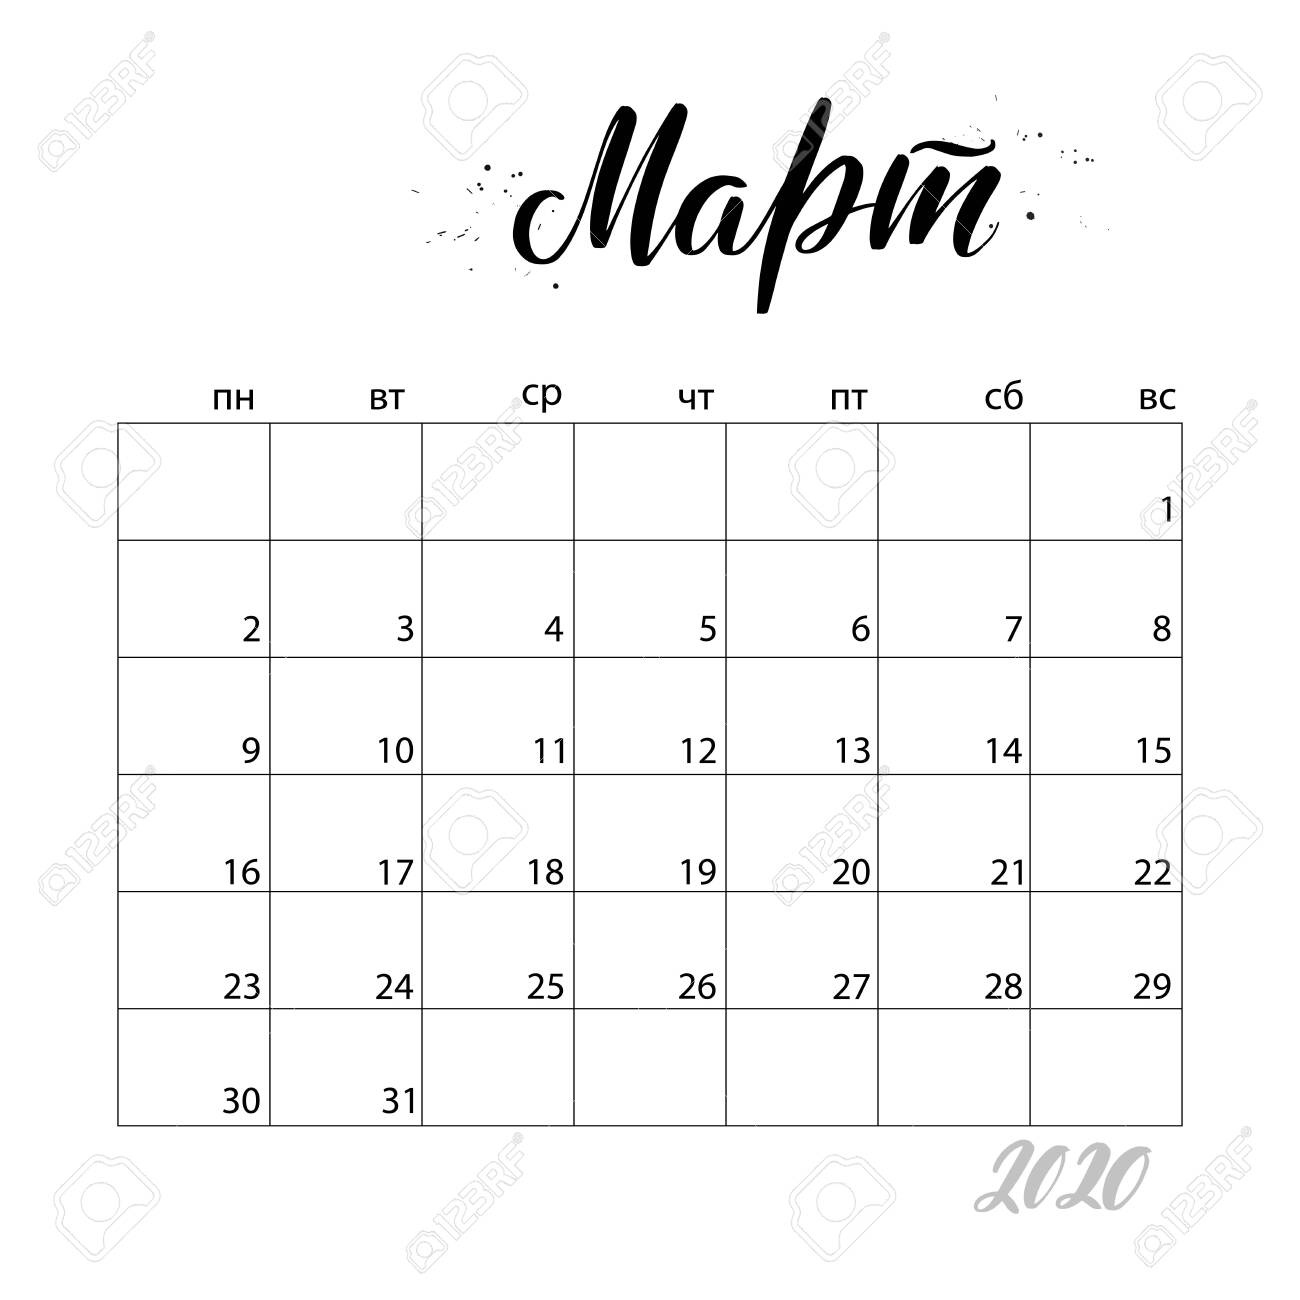 photograph relating to Stylish Planners and Organizers named March. Month-to-month calendar for 2020 yr. Handwritten progressive calligraphy..